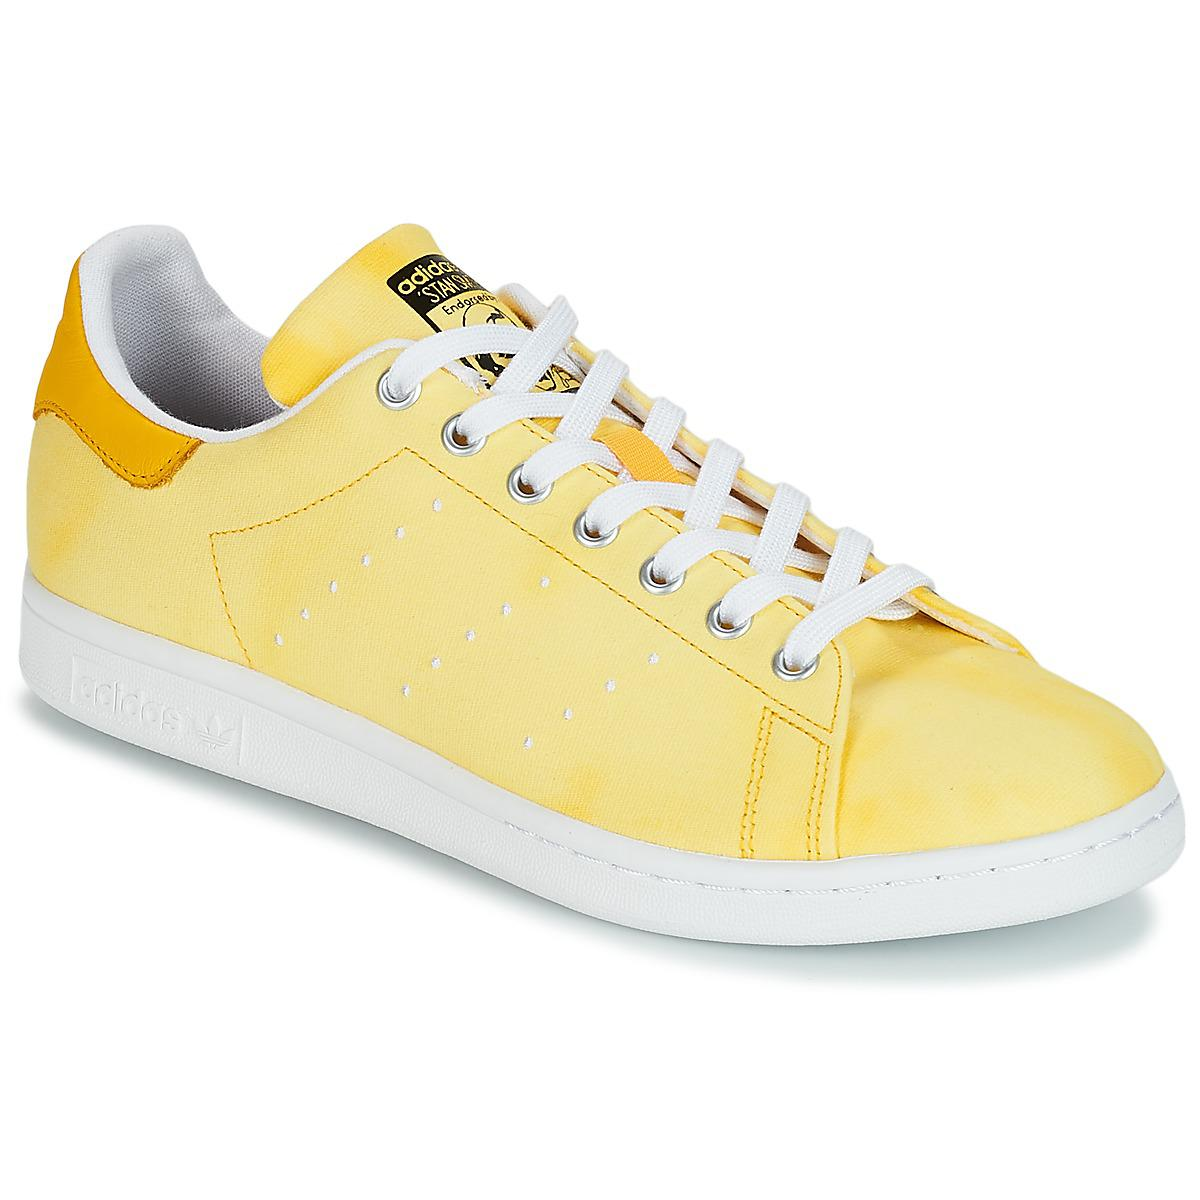 0ff1a7016 Adidas Stan Smith Pw Hu Holi Men s Shoes (trainers) In White in ...